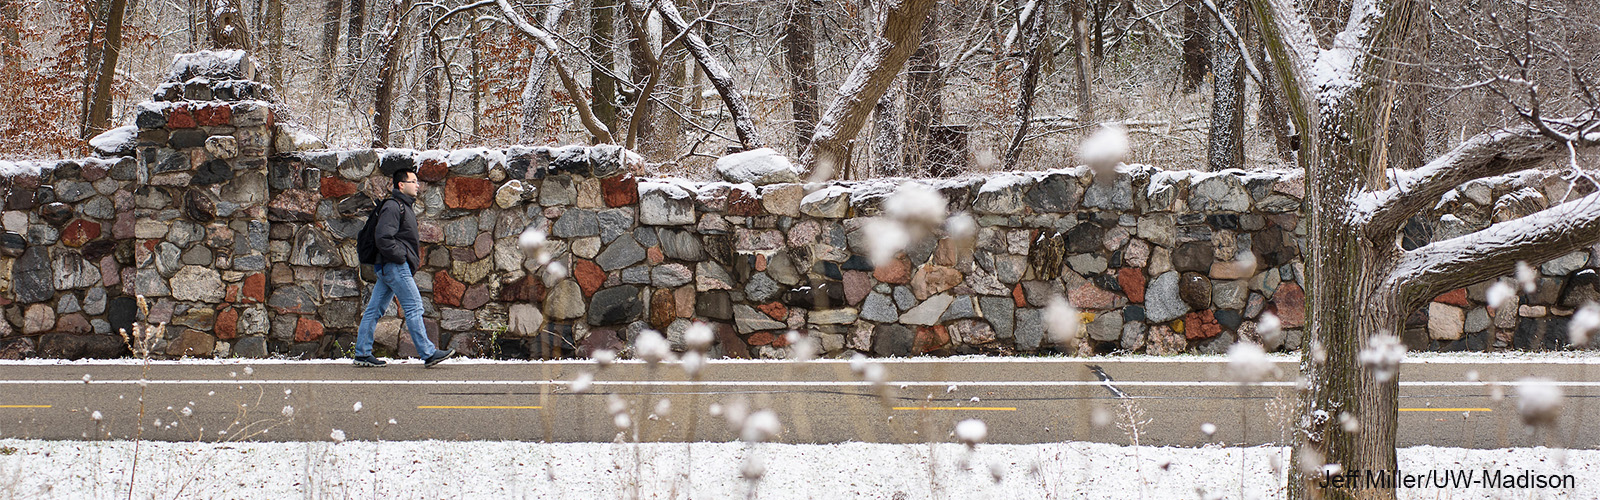 A dusting of snow covers the trees as a man walks by a stone wall entrance to Picnic Point.